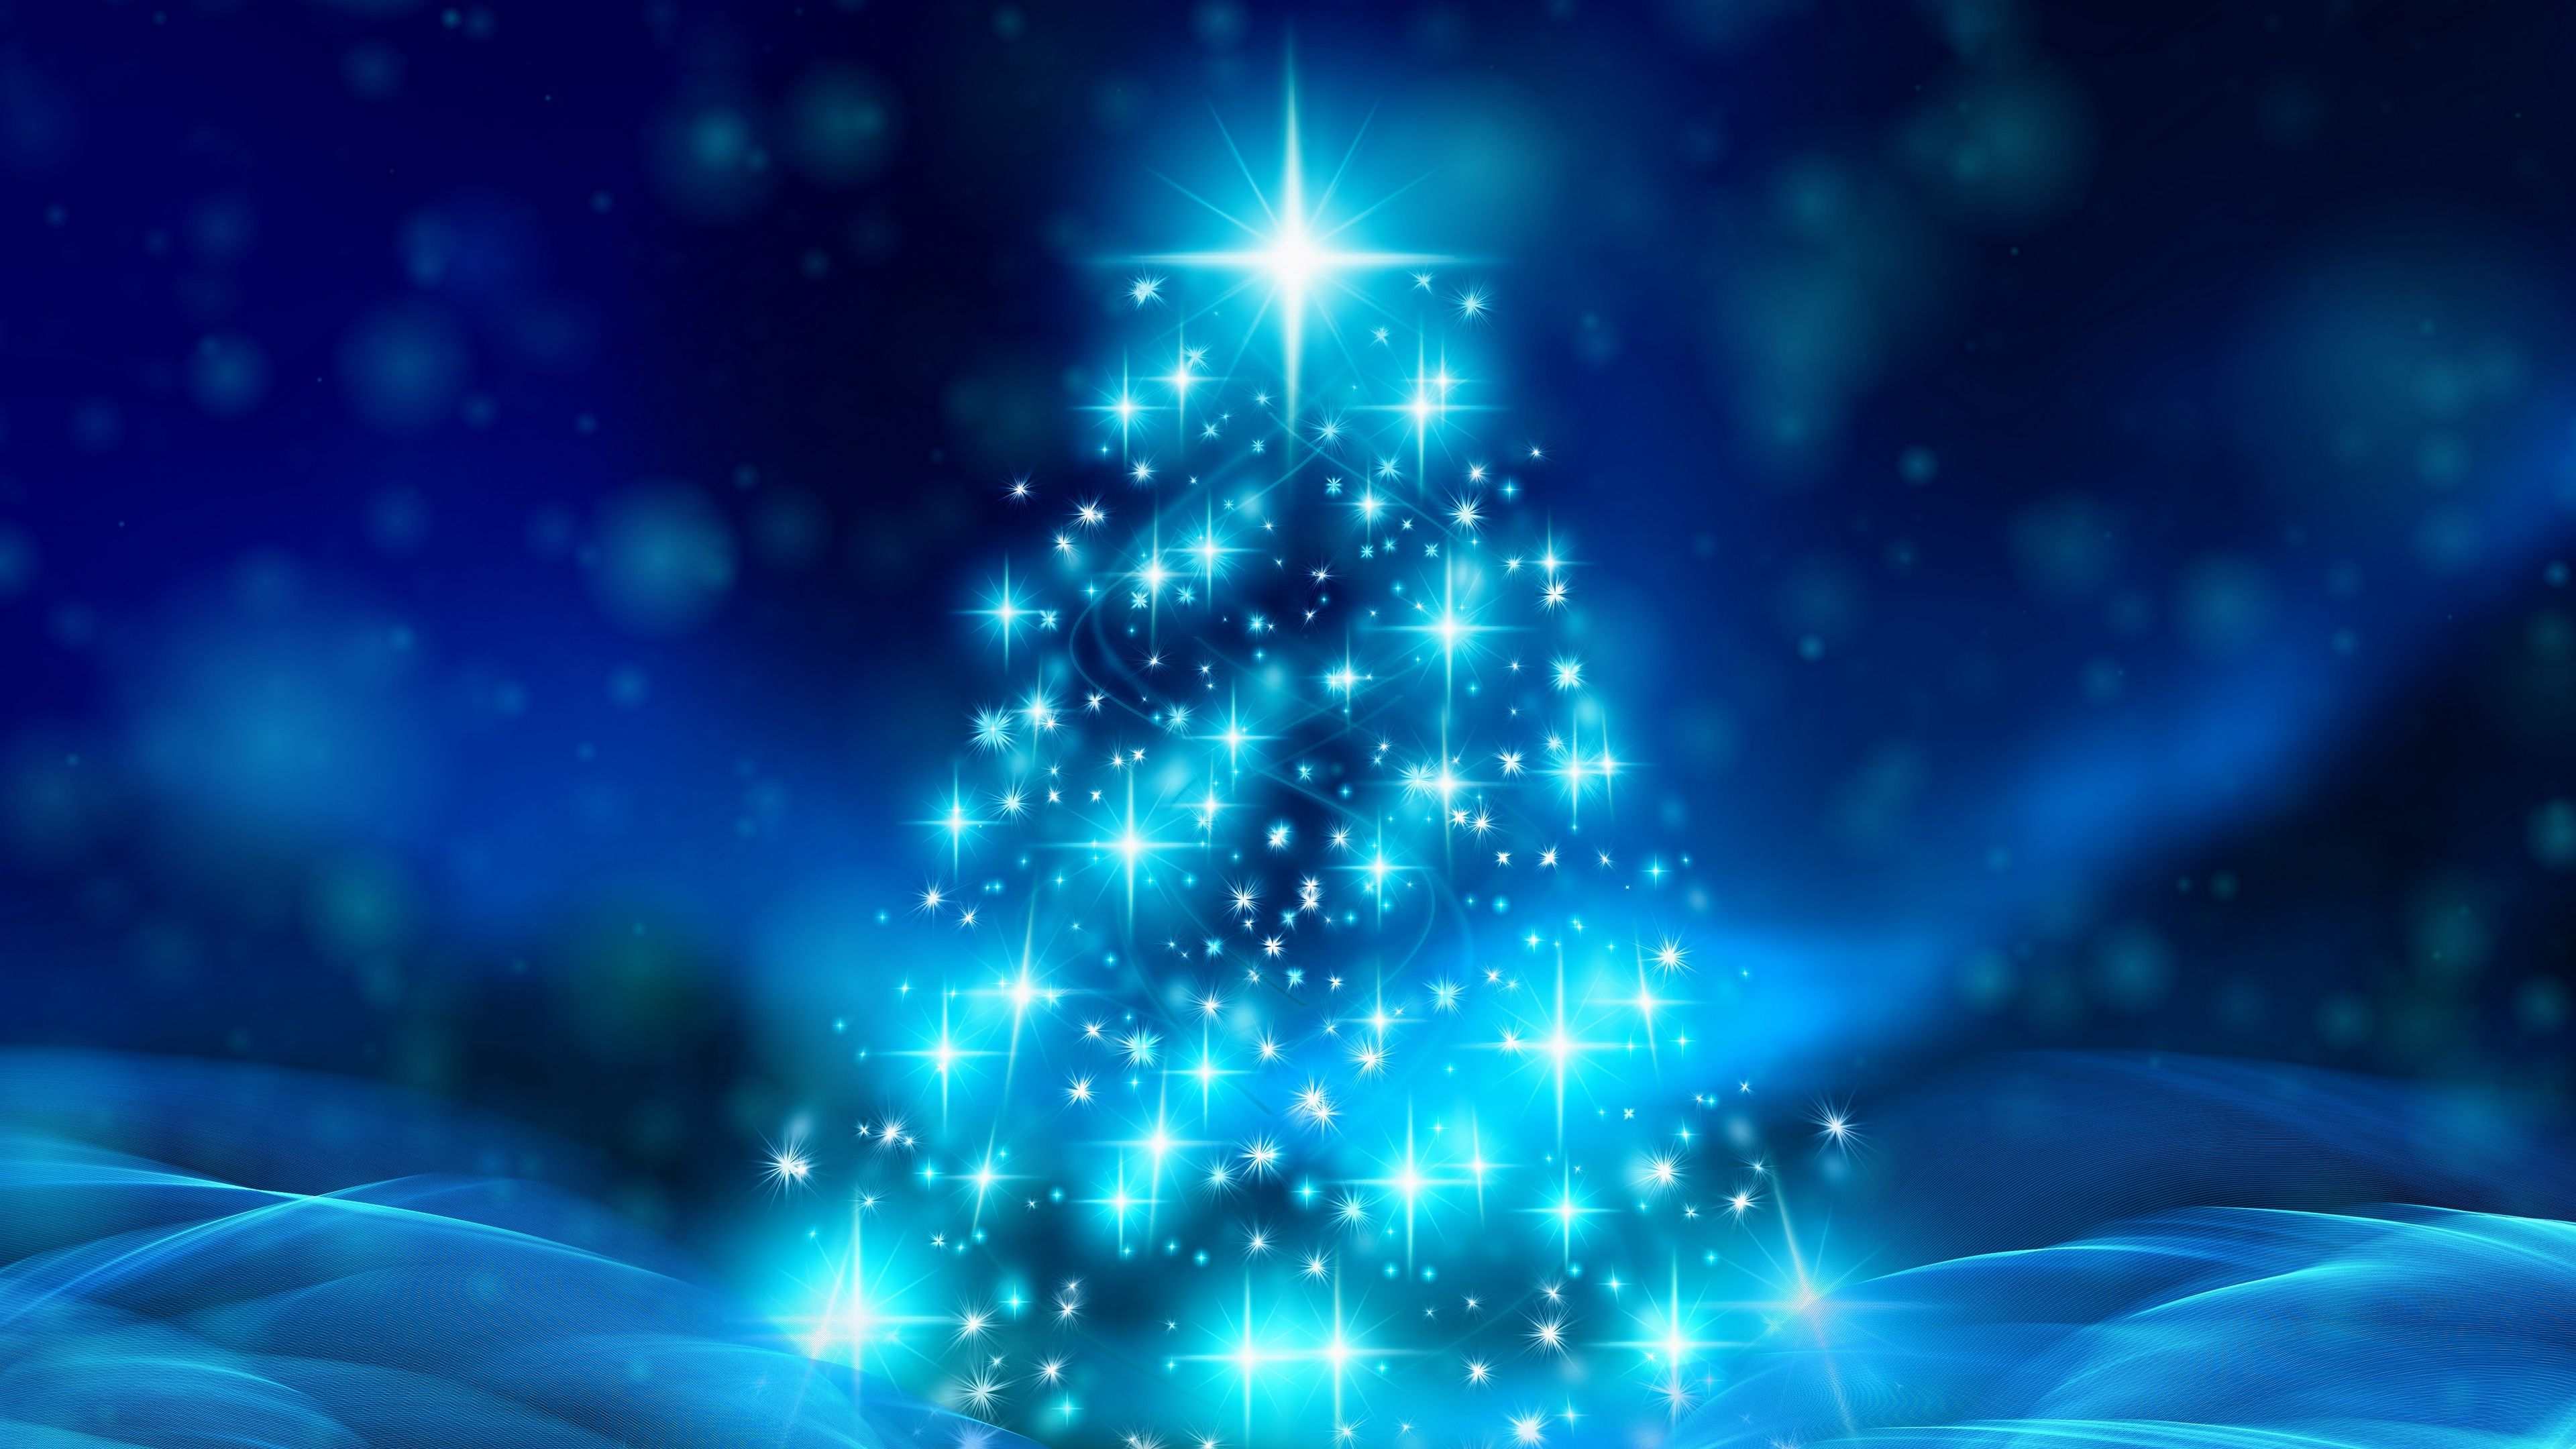 Wallpaper Tree Christmas 4k In 2020 Holiday Wallpaper Wallpaper Christmas Wallpaper